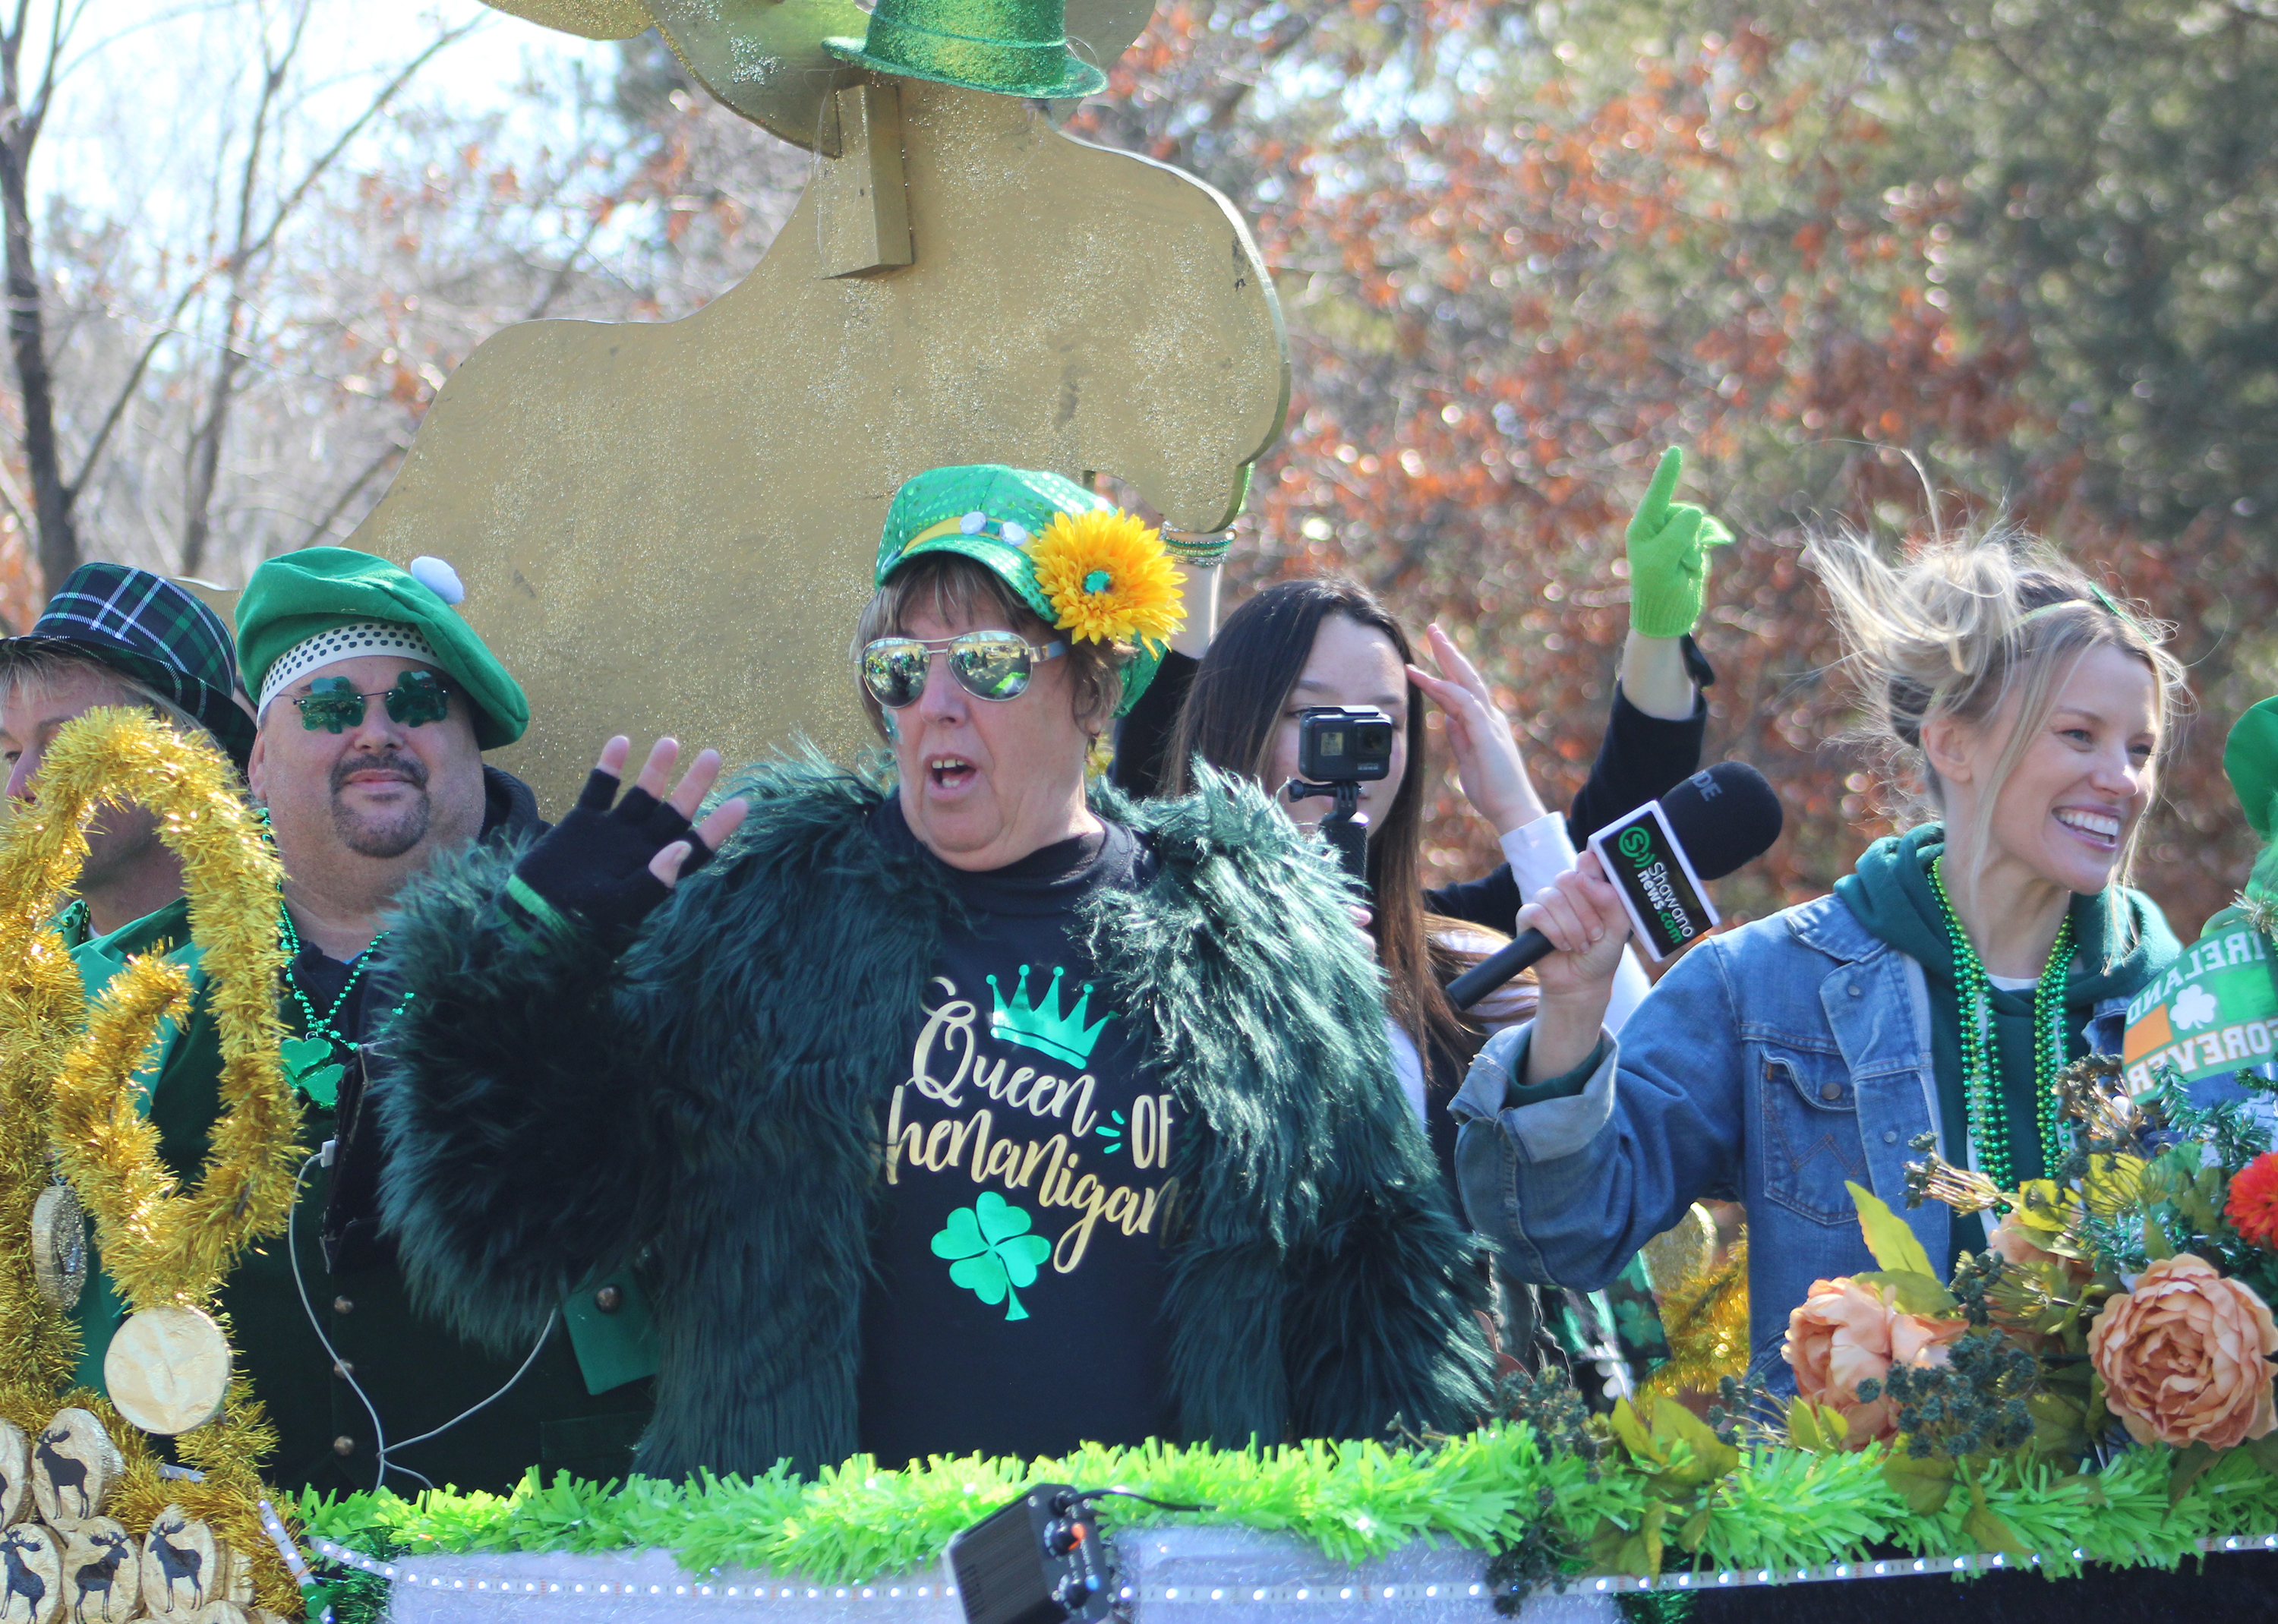 """It's unclear whether shenanigans were going on aboard this float from Just Moose'n Around, despite one of the passengers wearing a shirt that said """"Queen of Shenanigans."""" What was clear was that many were having a wonderful time during the Mooseyard St. Patrick's Day Parade on March 13.(Lee Pulaski 